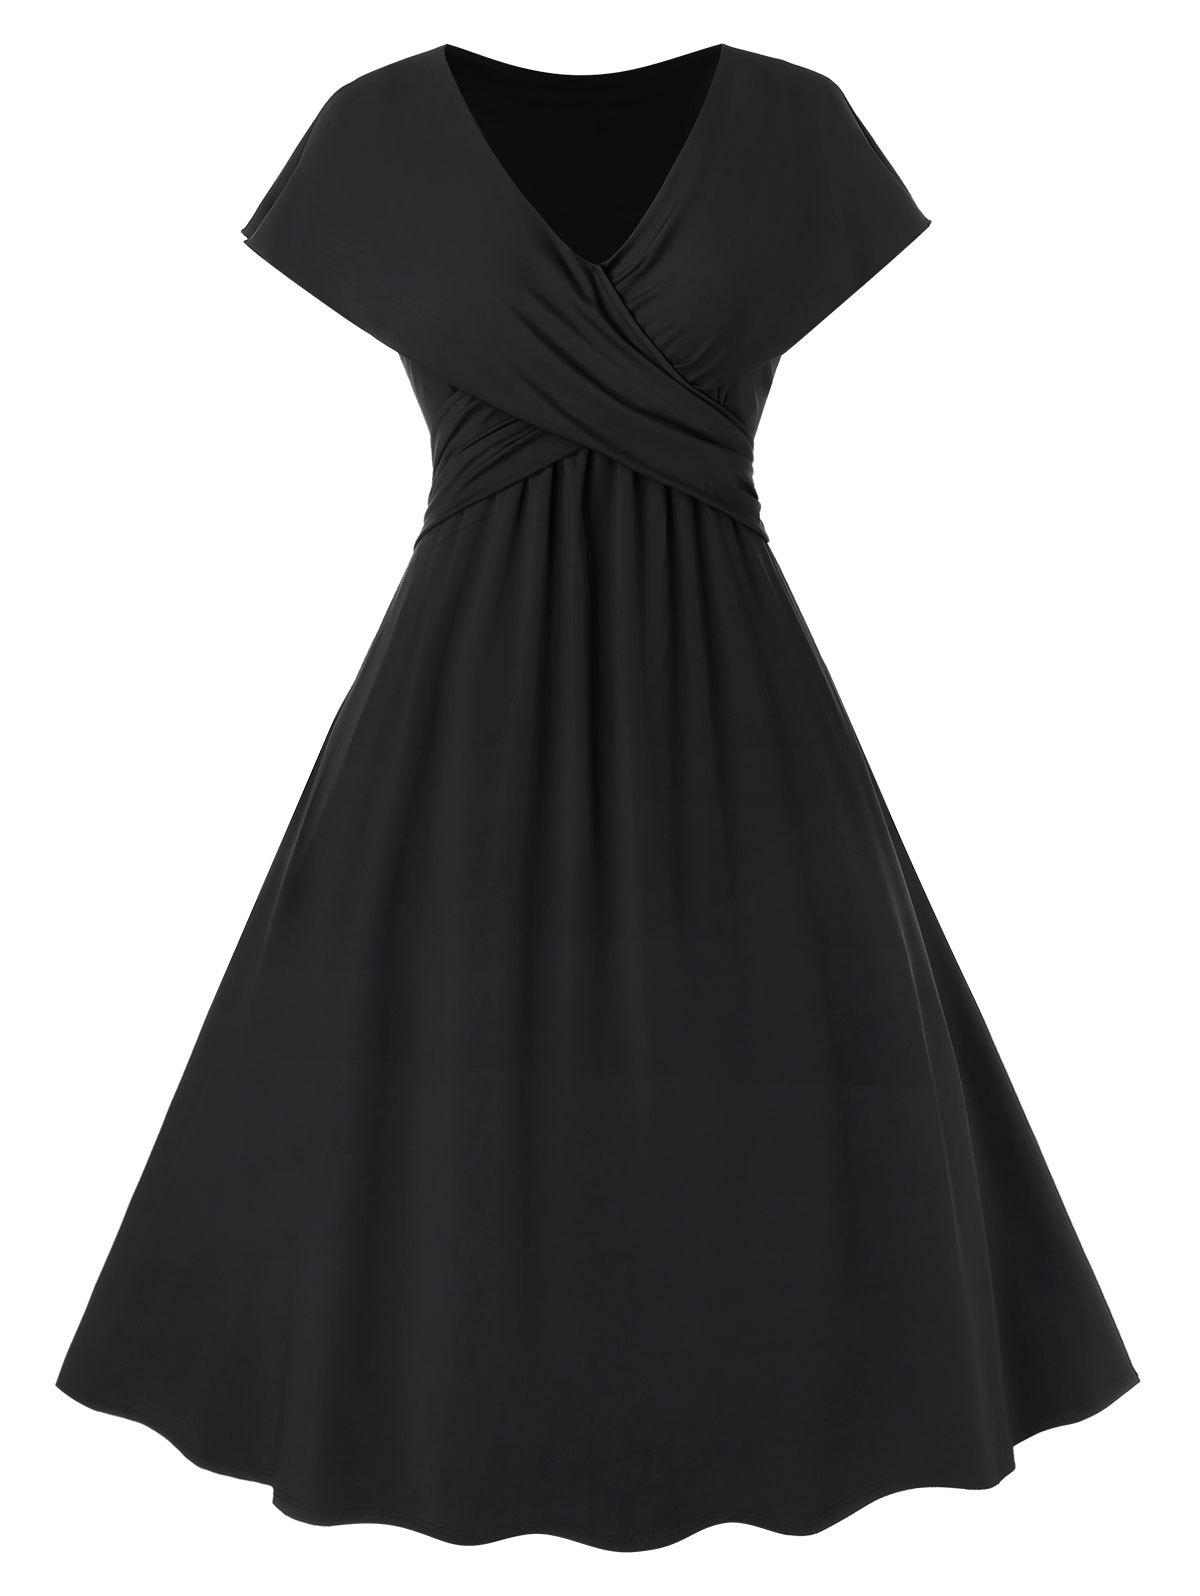 Plus Size Crossover Pin Dress Up - Noir 5X